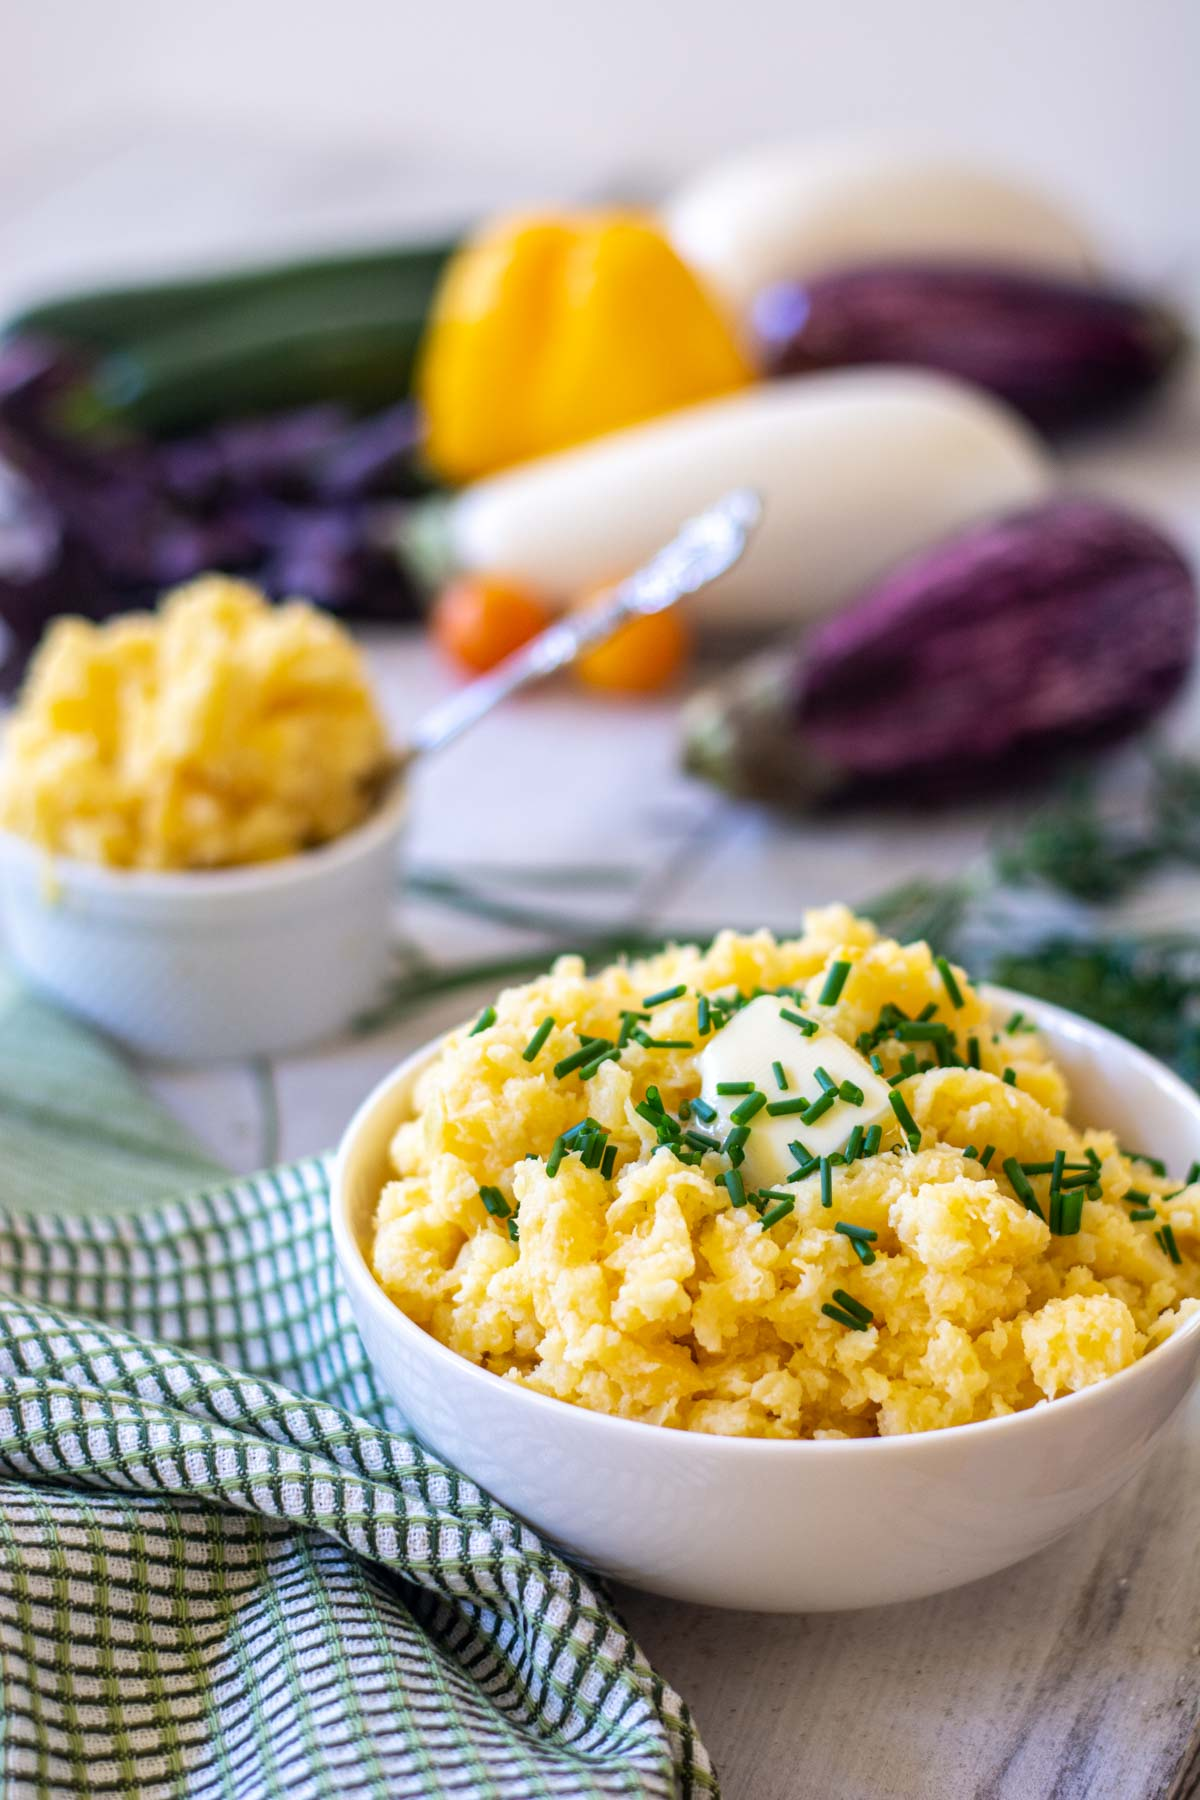 bowl of mashed rutabaga topped with butter and chives.